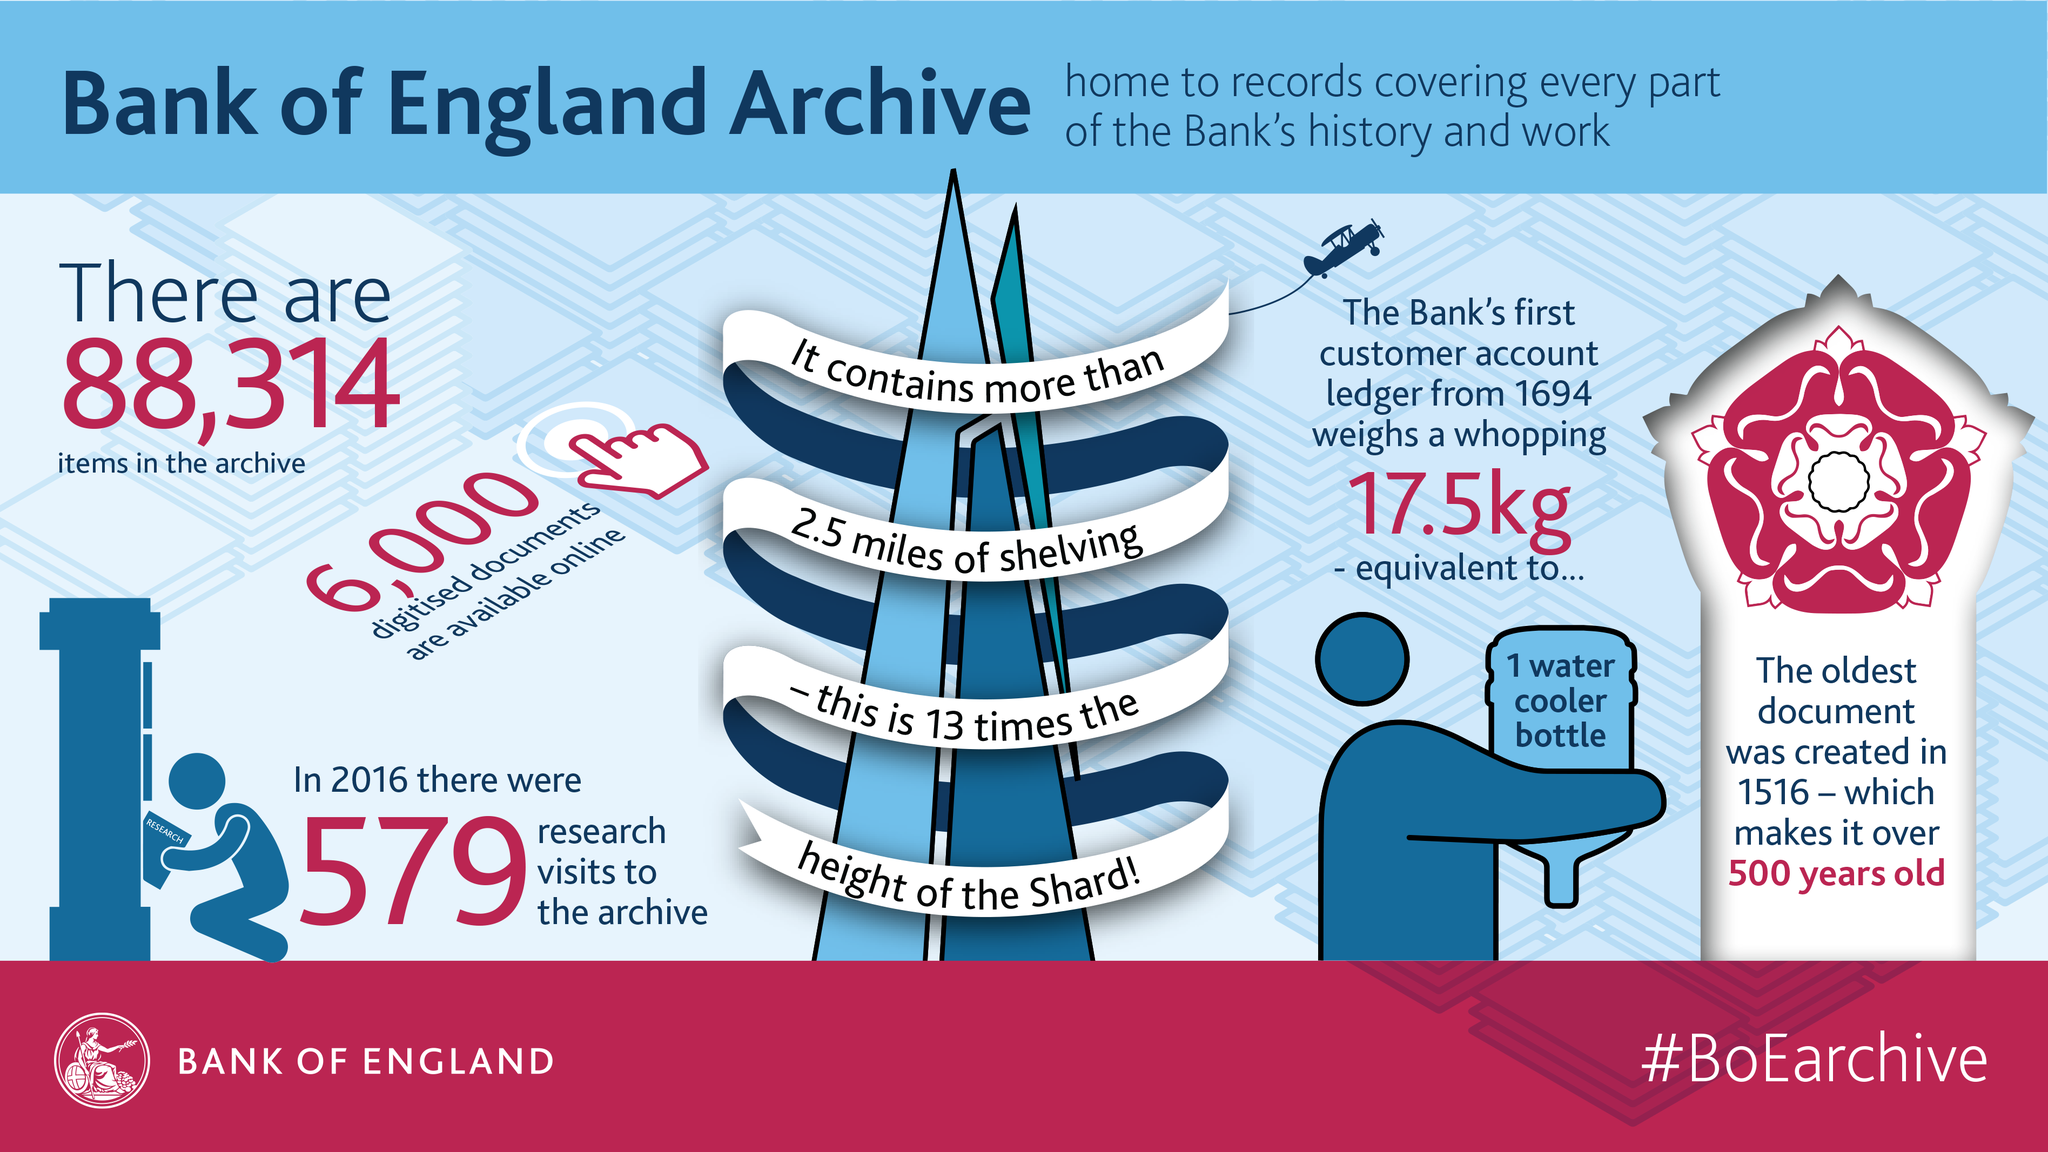 It's International Archives Day! #DidYouKnow that the Bank of England has its own archive? #IAD17 #BoEArchive https://t.co/BZAa9ZhU6u